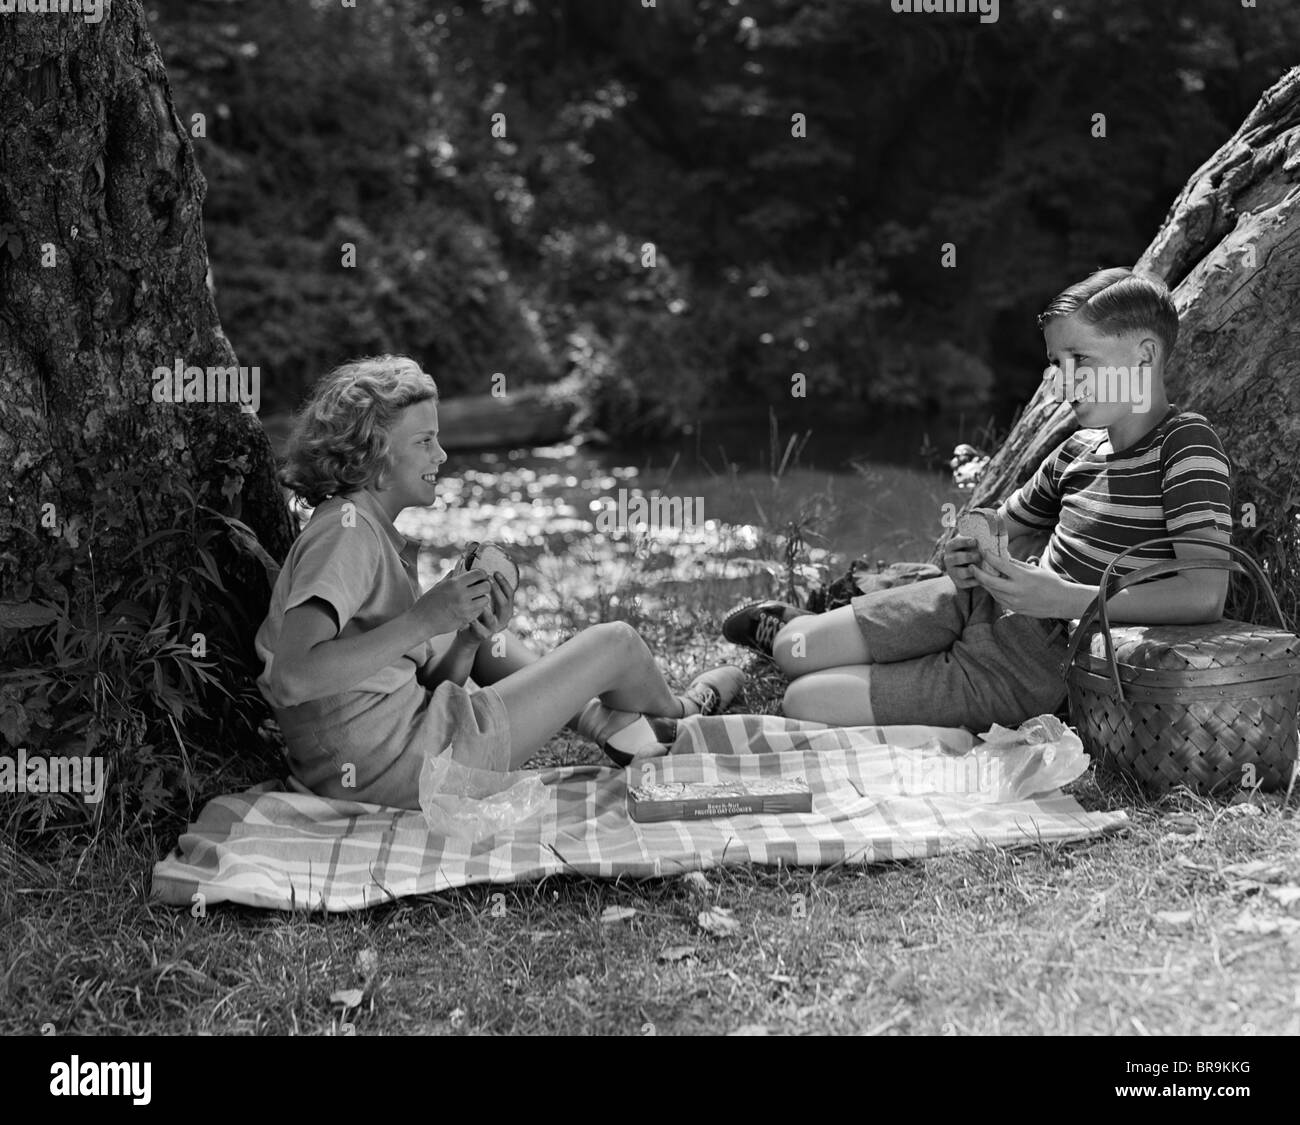 1940s BOY AND GIRL HAVING SUMMER PICNIC BY STREAM - Stock Image